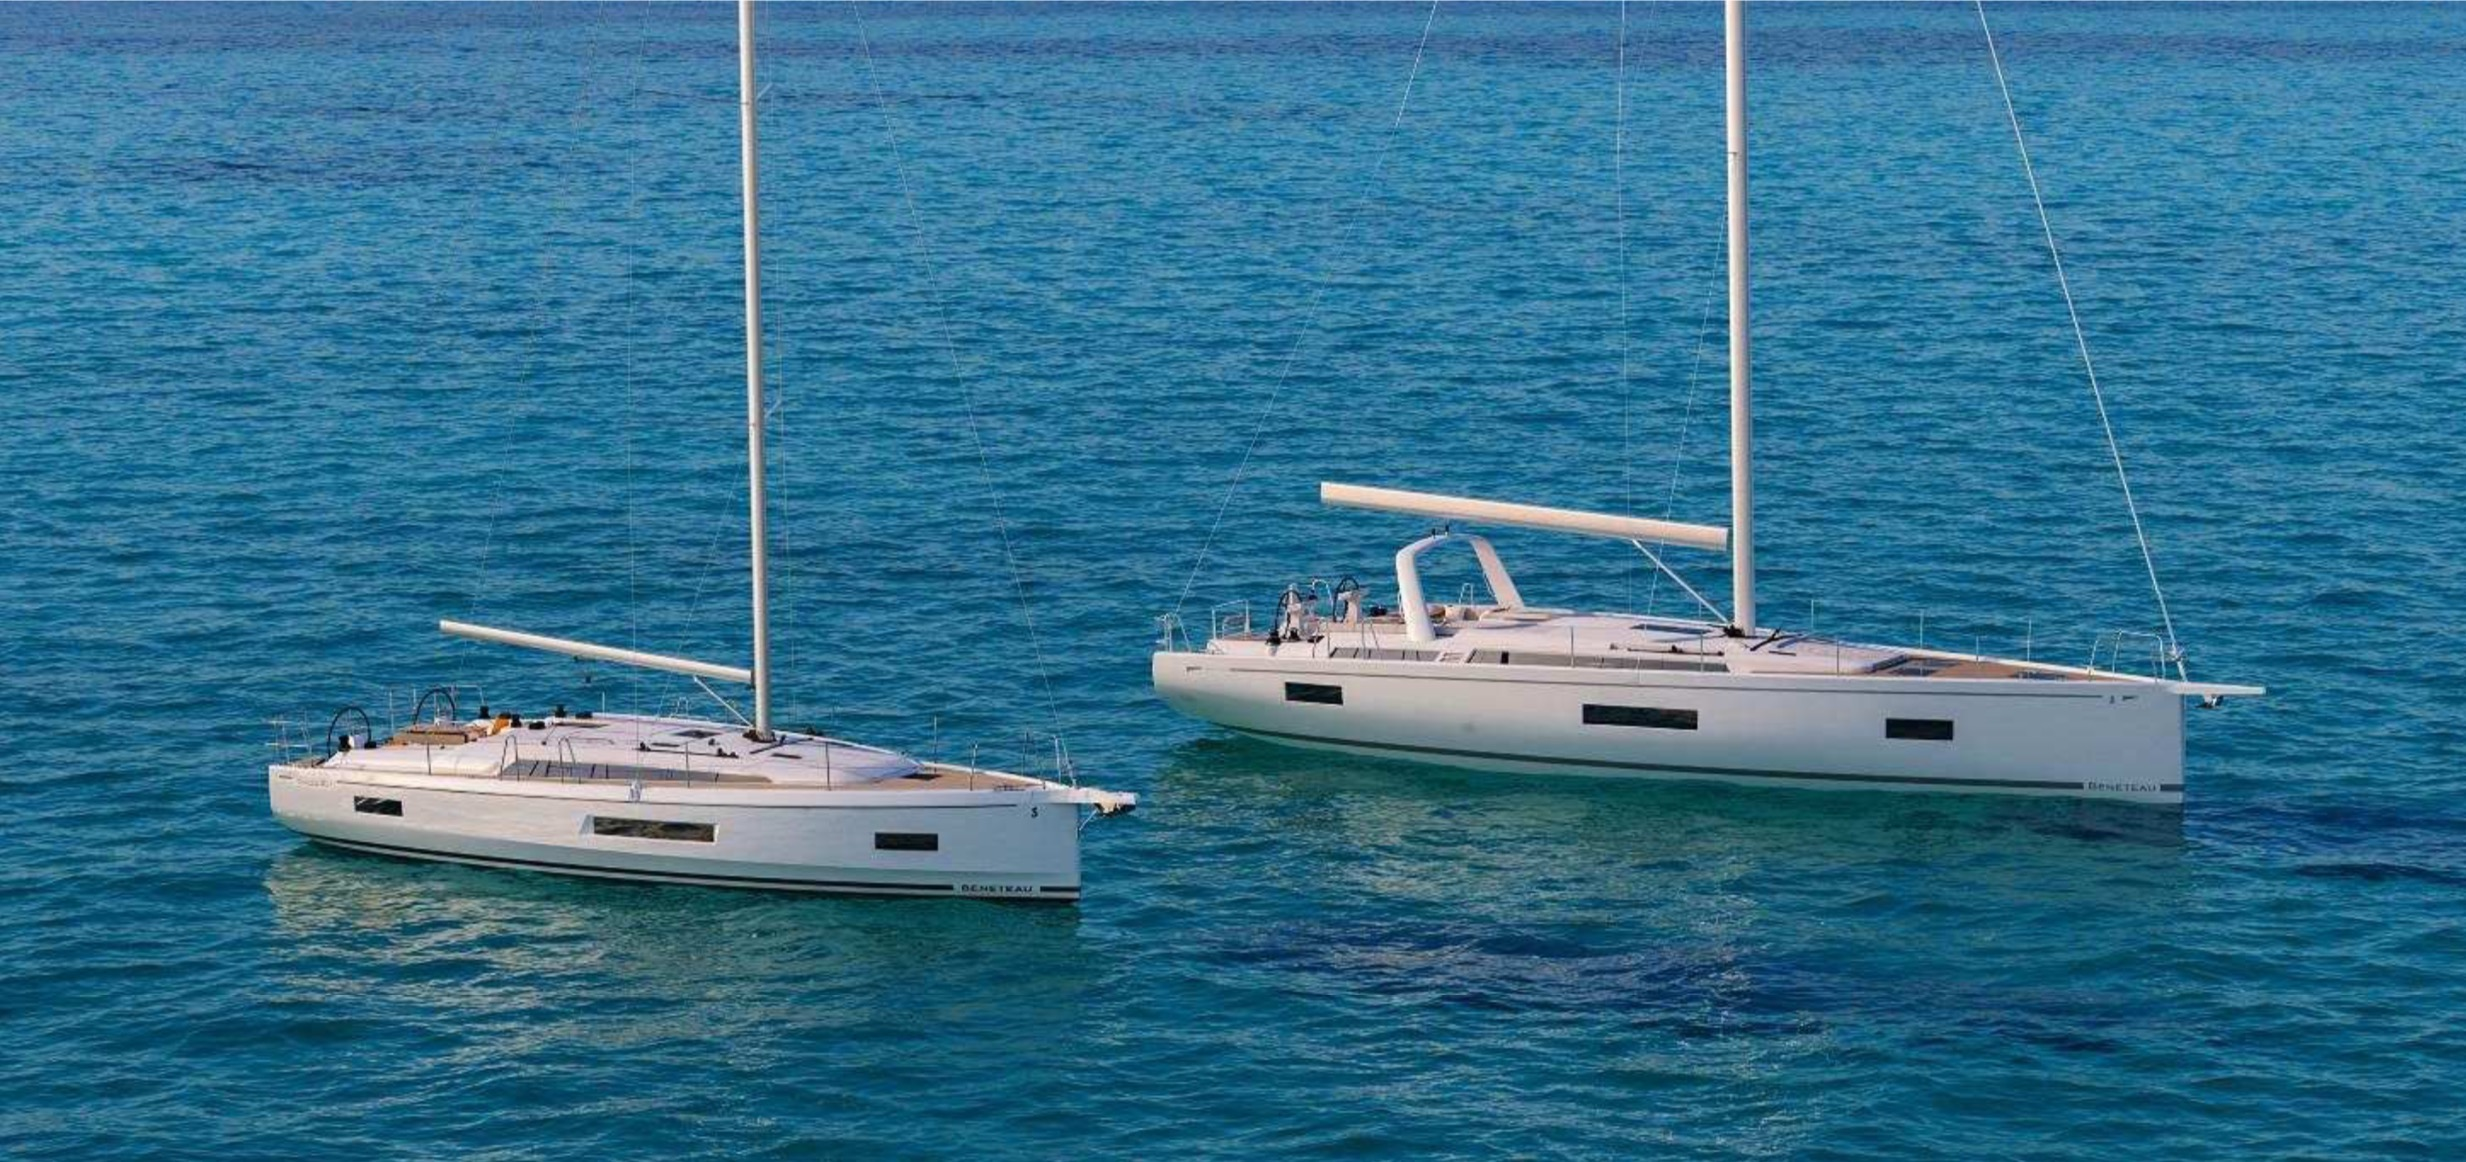 Introducing, the Bénéteau Oceanis 40.1 and Oceanis Yacht 54